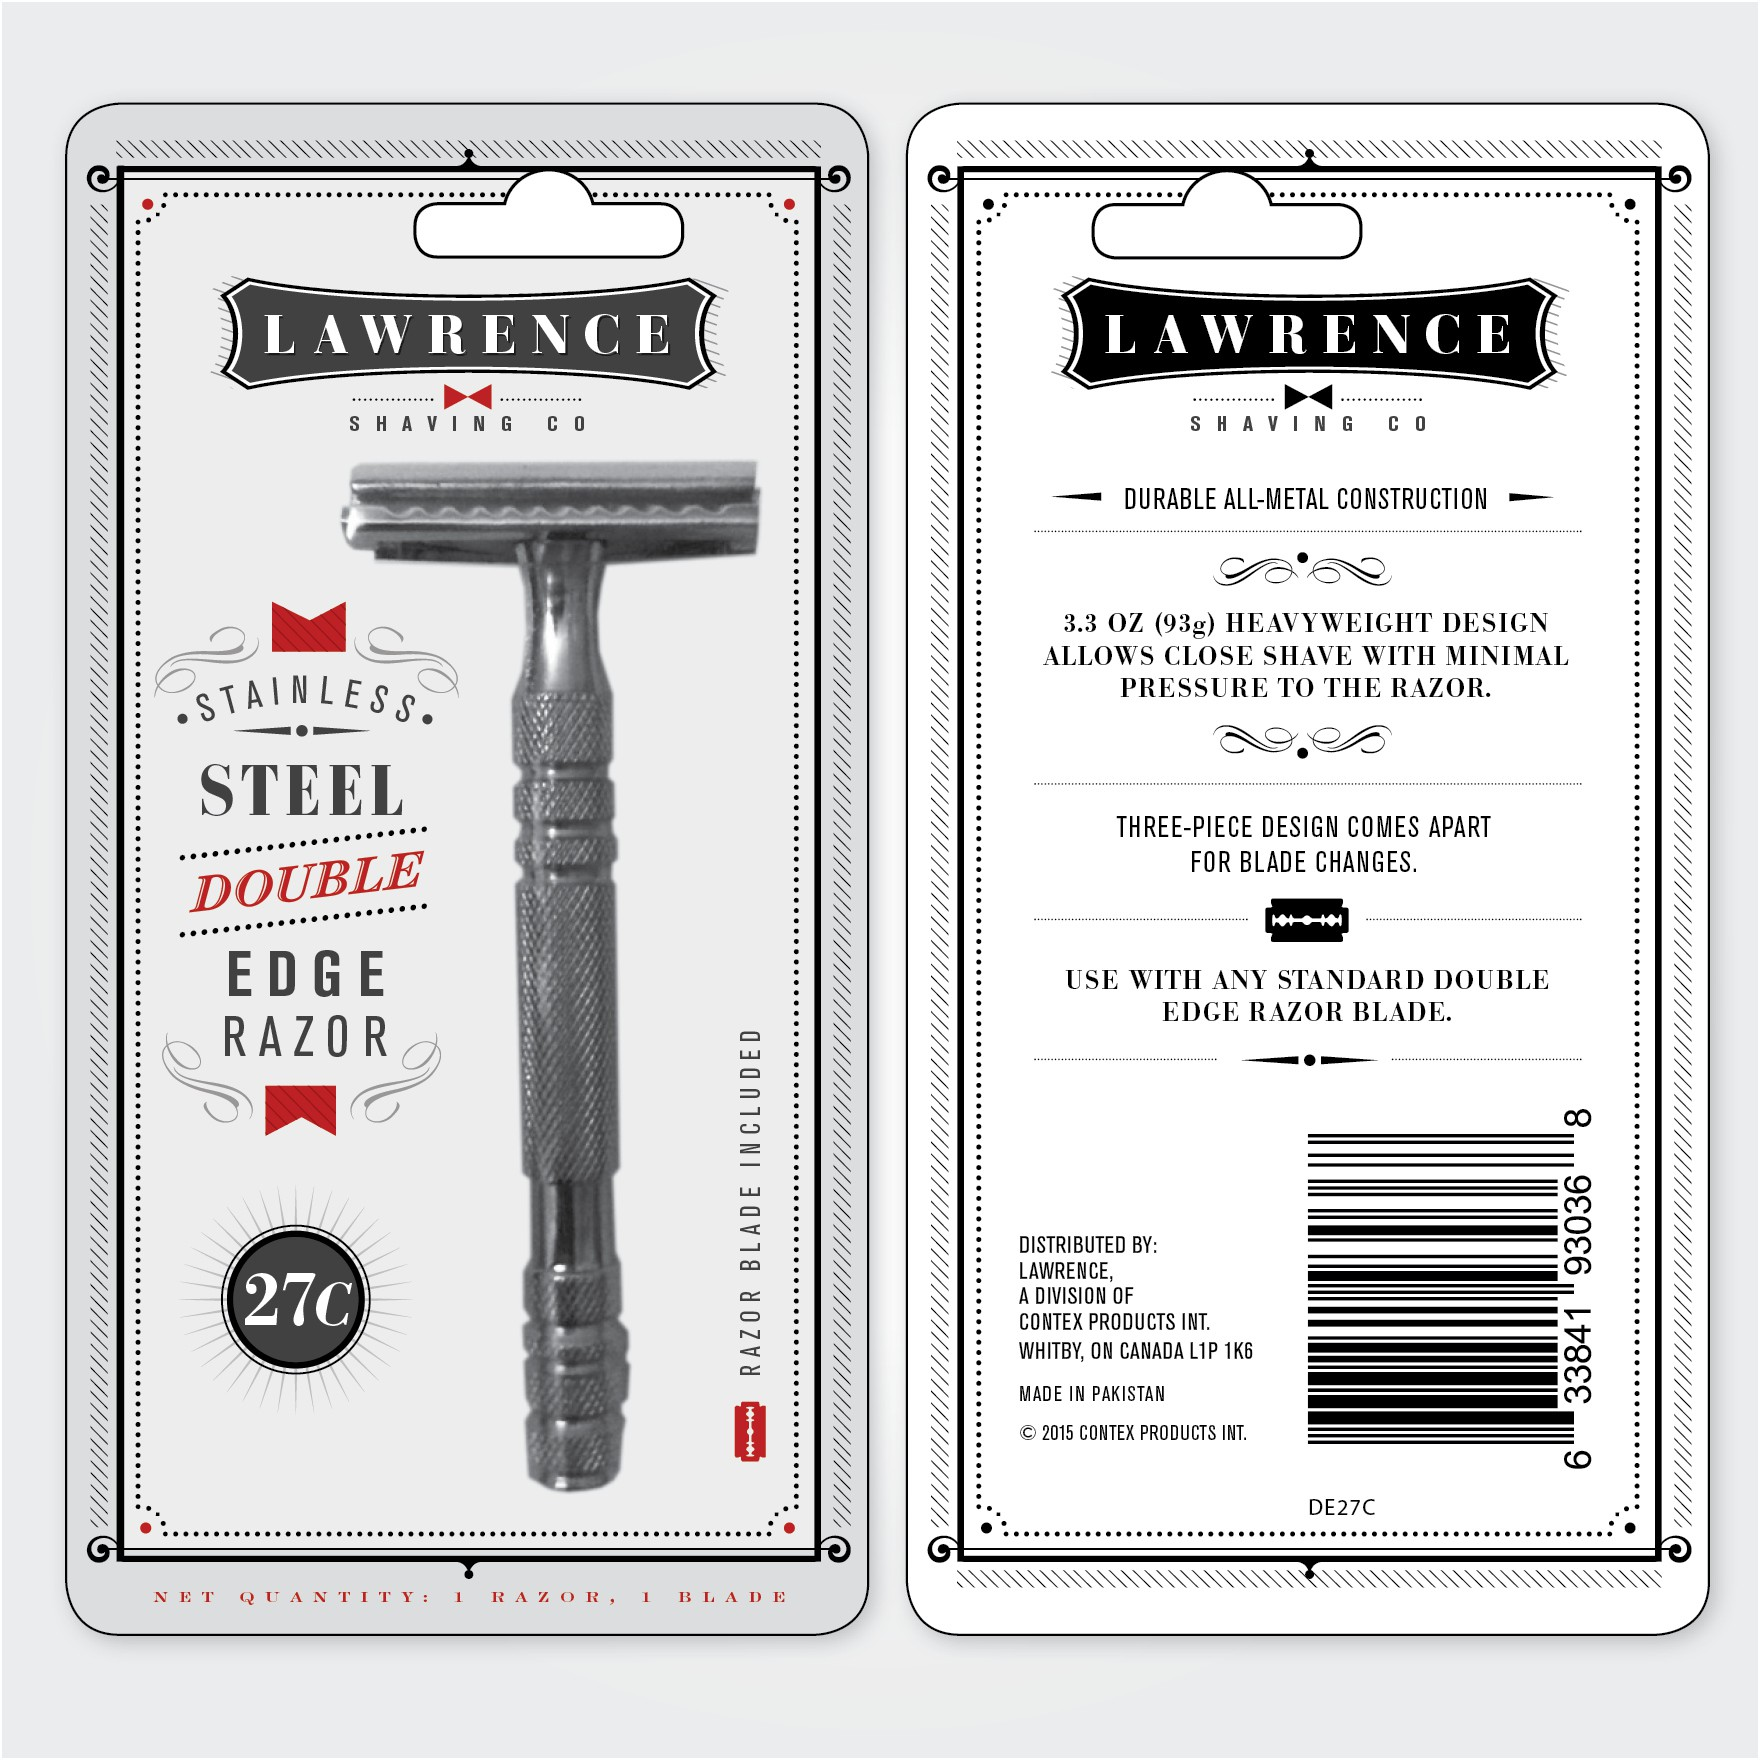 Create a Blister Card Design for Lawrence 27C Razor